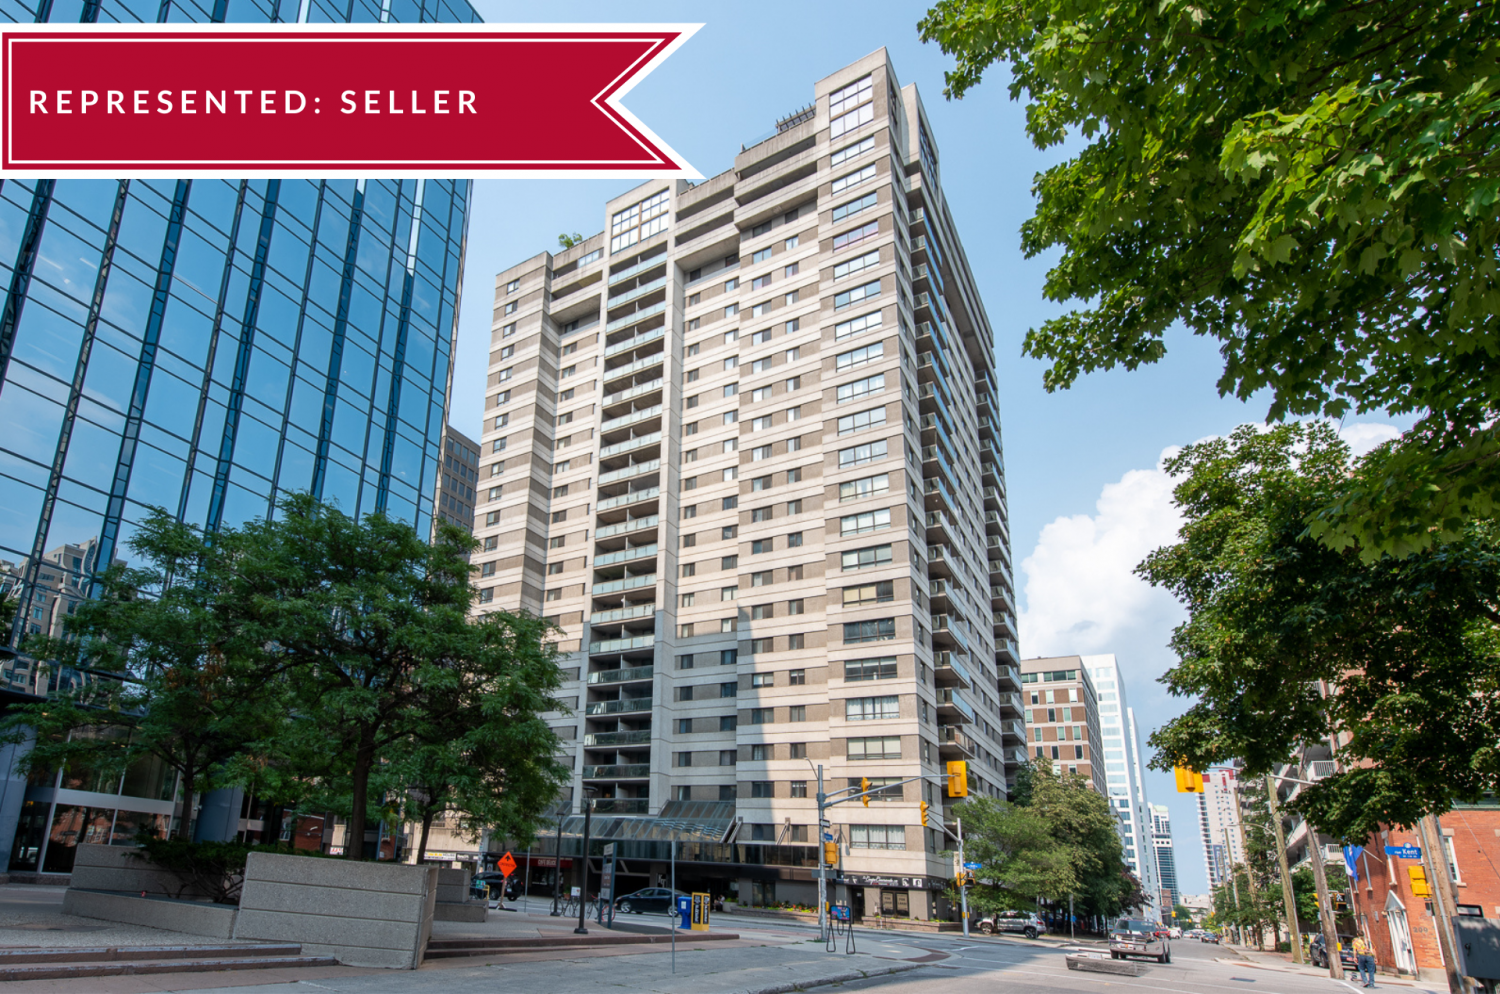 Two Bedroom Condo In Centretown